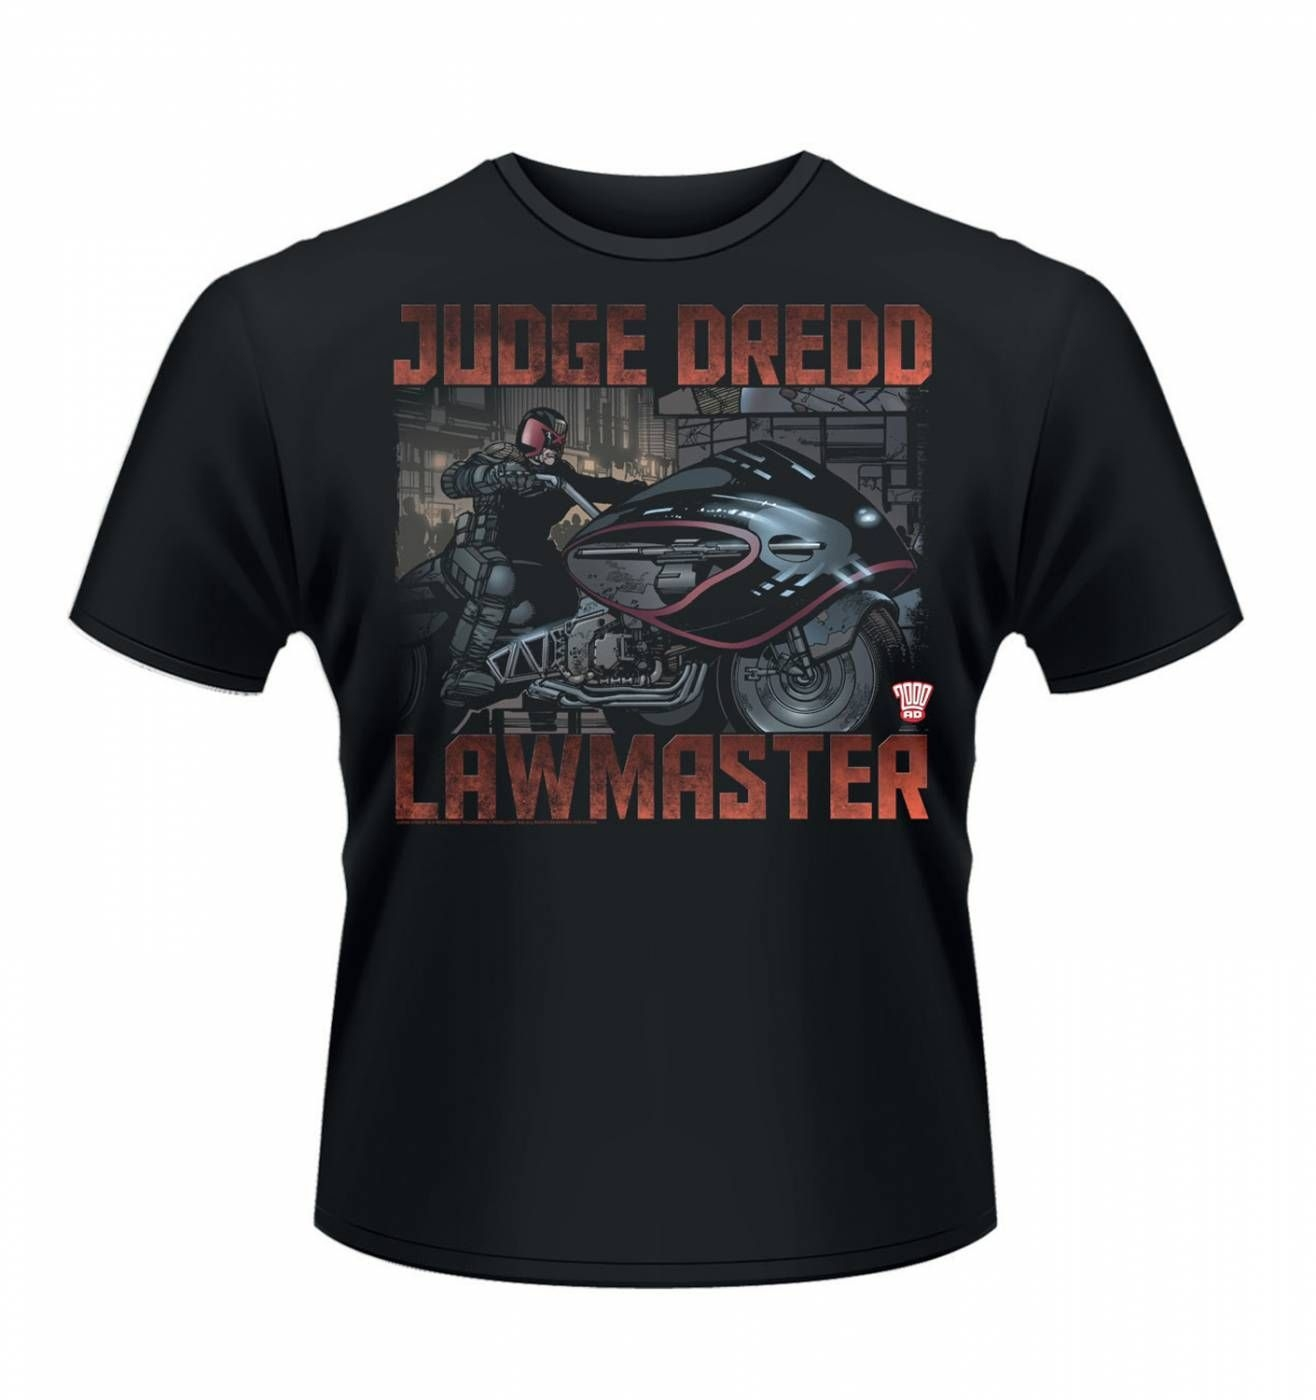 Judge Dredd Lawmaster t-shirt - Official